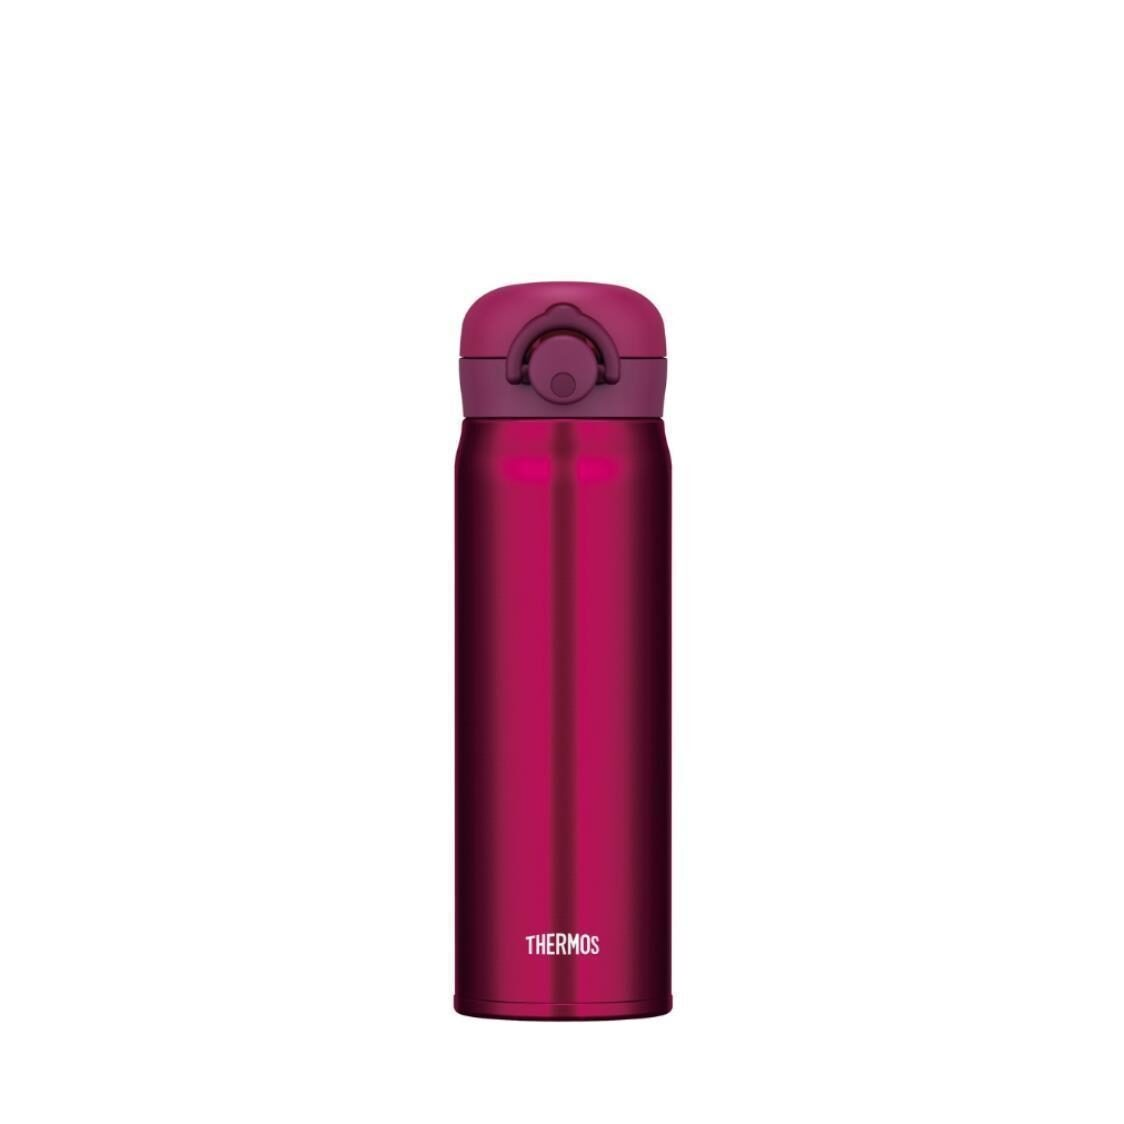 One Push Tumbler With Local Design Stickers 05L Wine Red